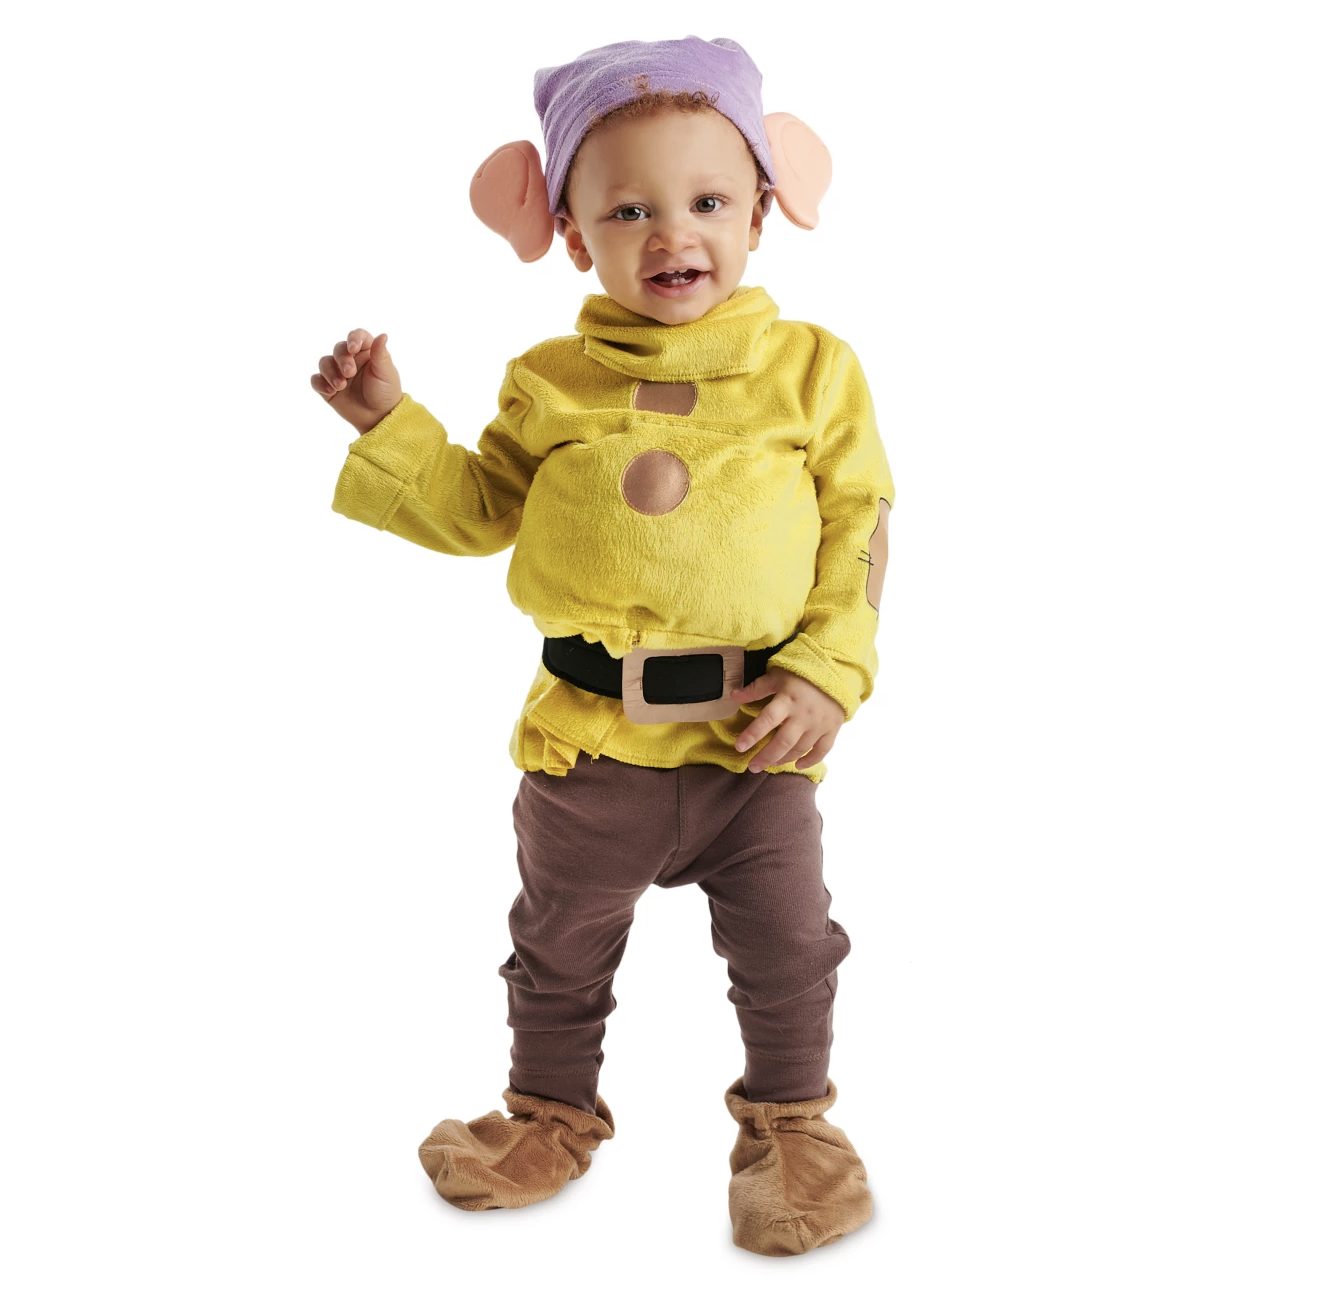 Baby in a Dopey costume, best baby halloween costumes